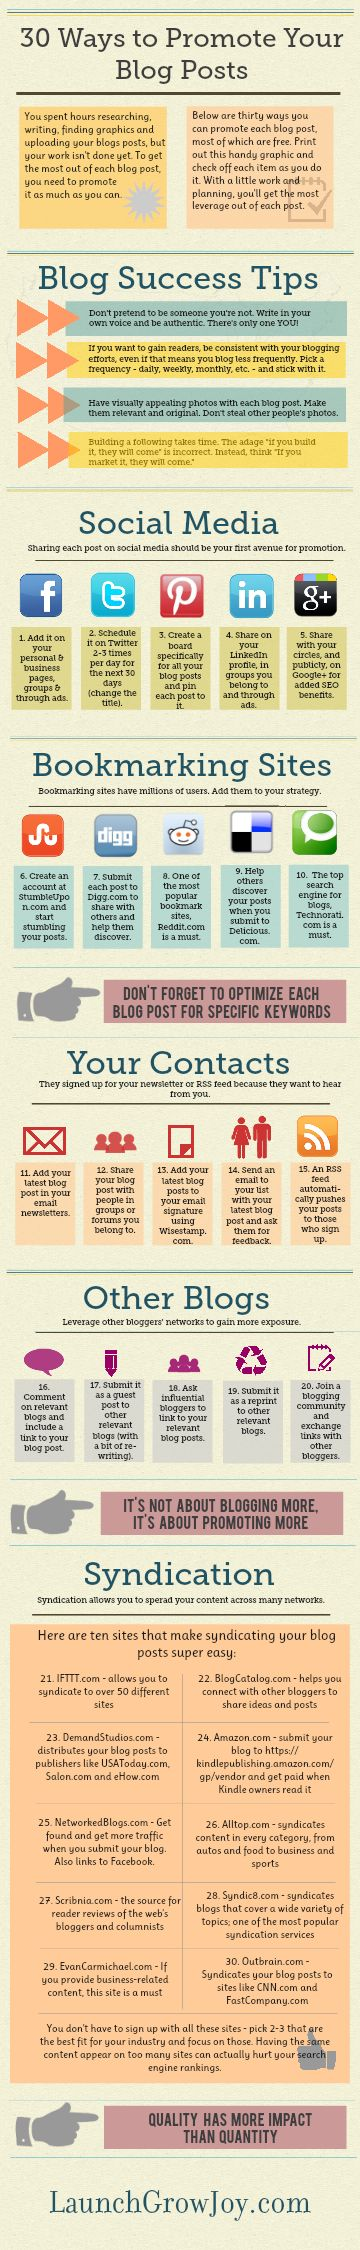 Blog Post Promotion - I love this one. Other than writing really useful stuff, the next most important aspect of blogging is getting your message out where people can enjoy it. This infographic tells you how and where to promote your posts.